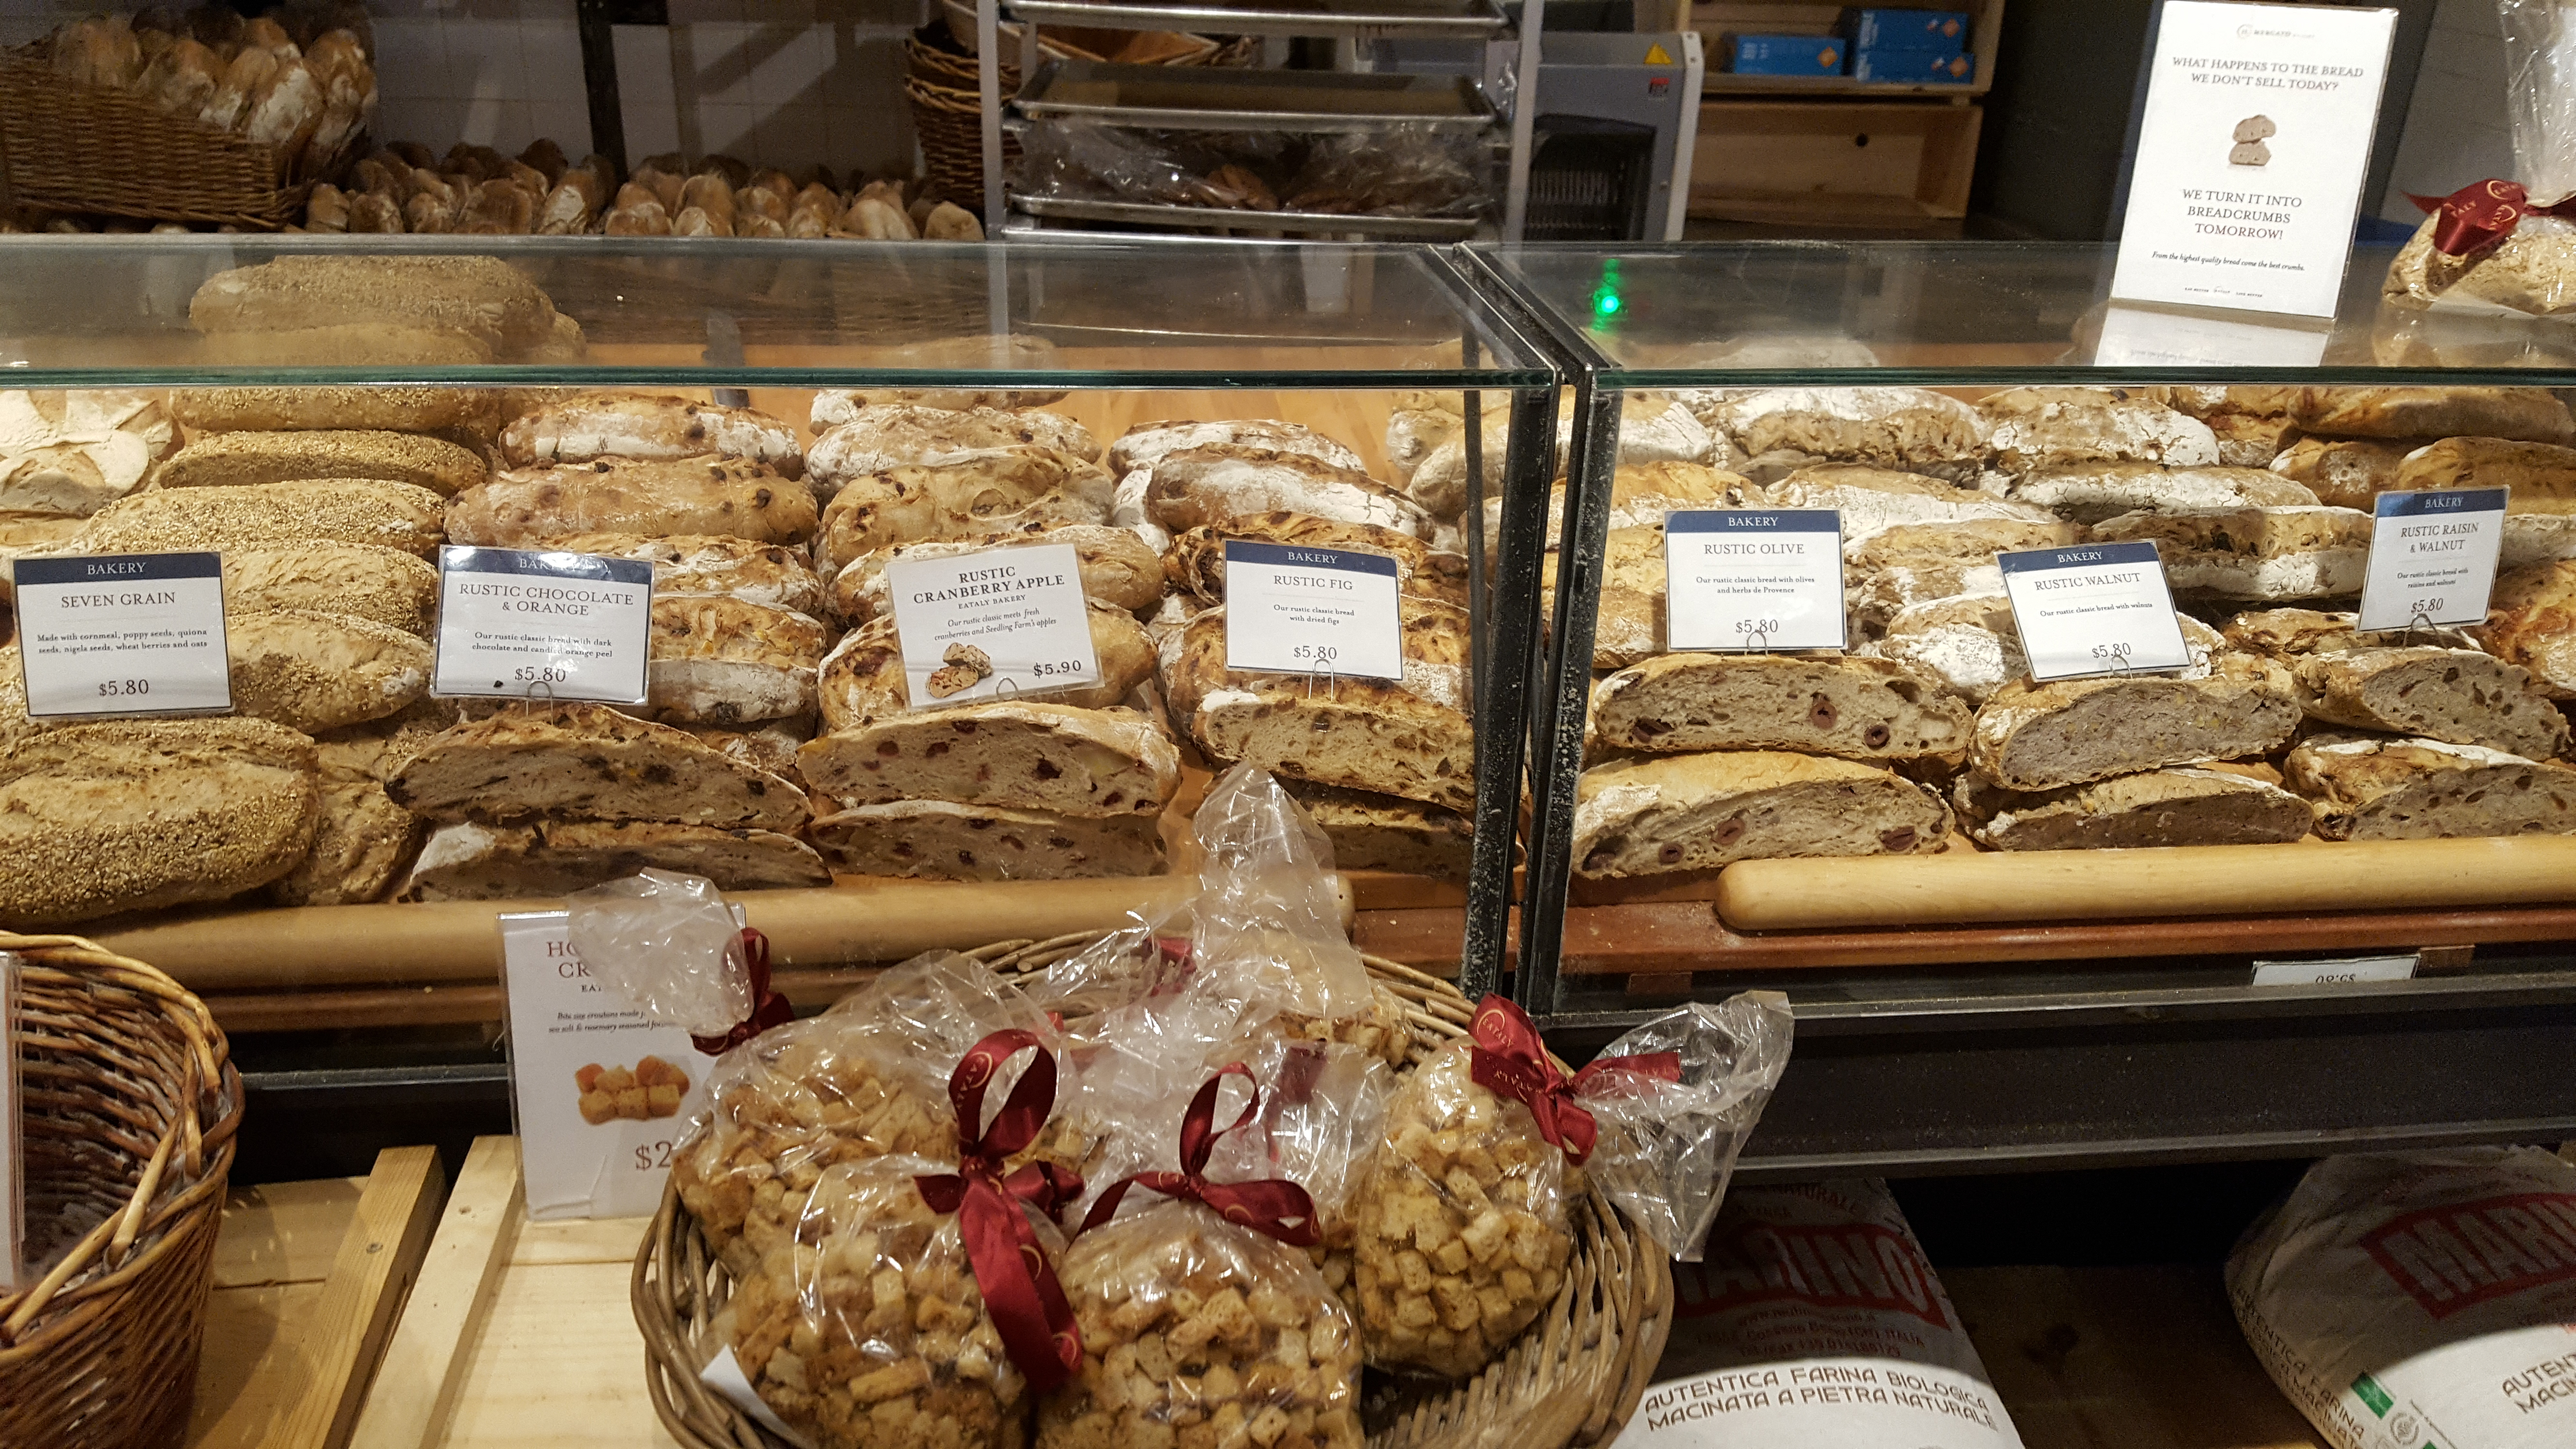 The Bakery at Little Eataly in Chicago - FLAVORFUL